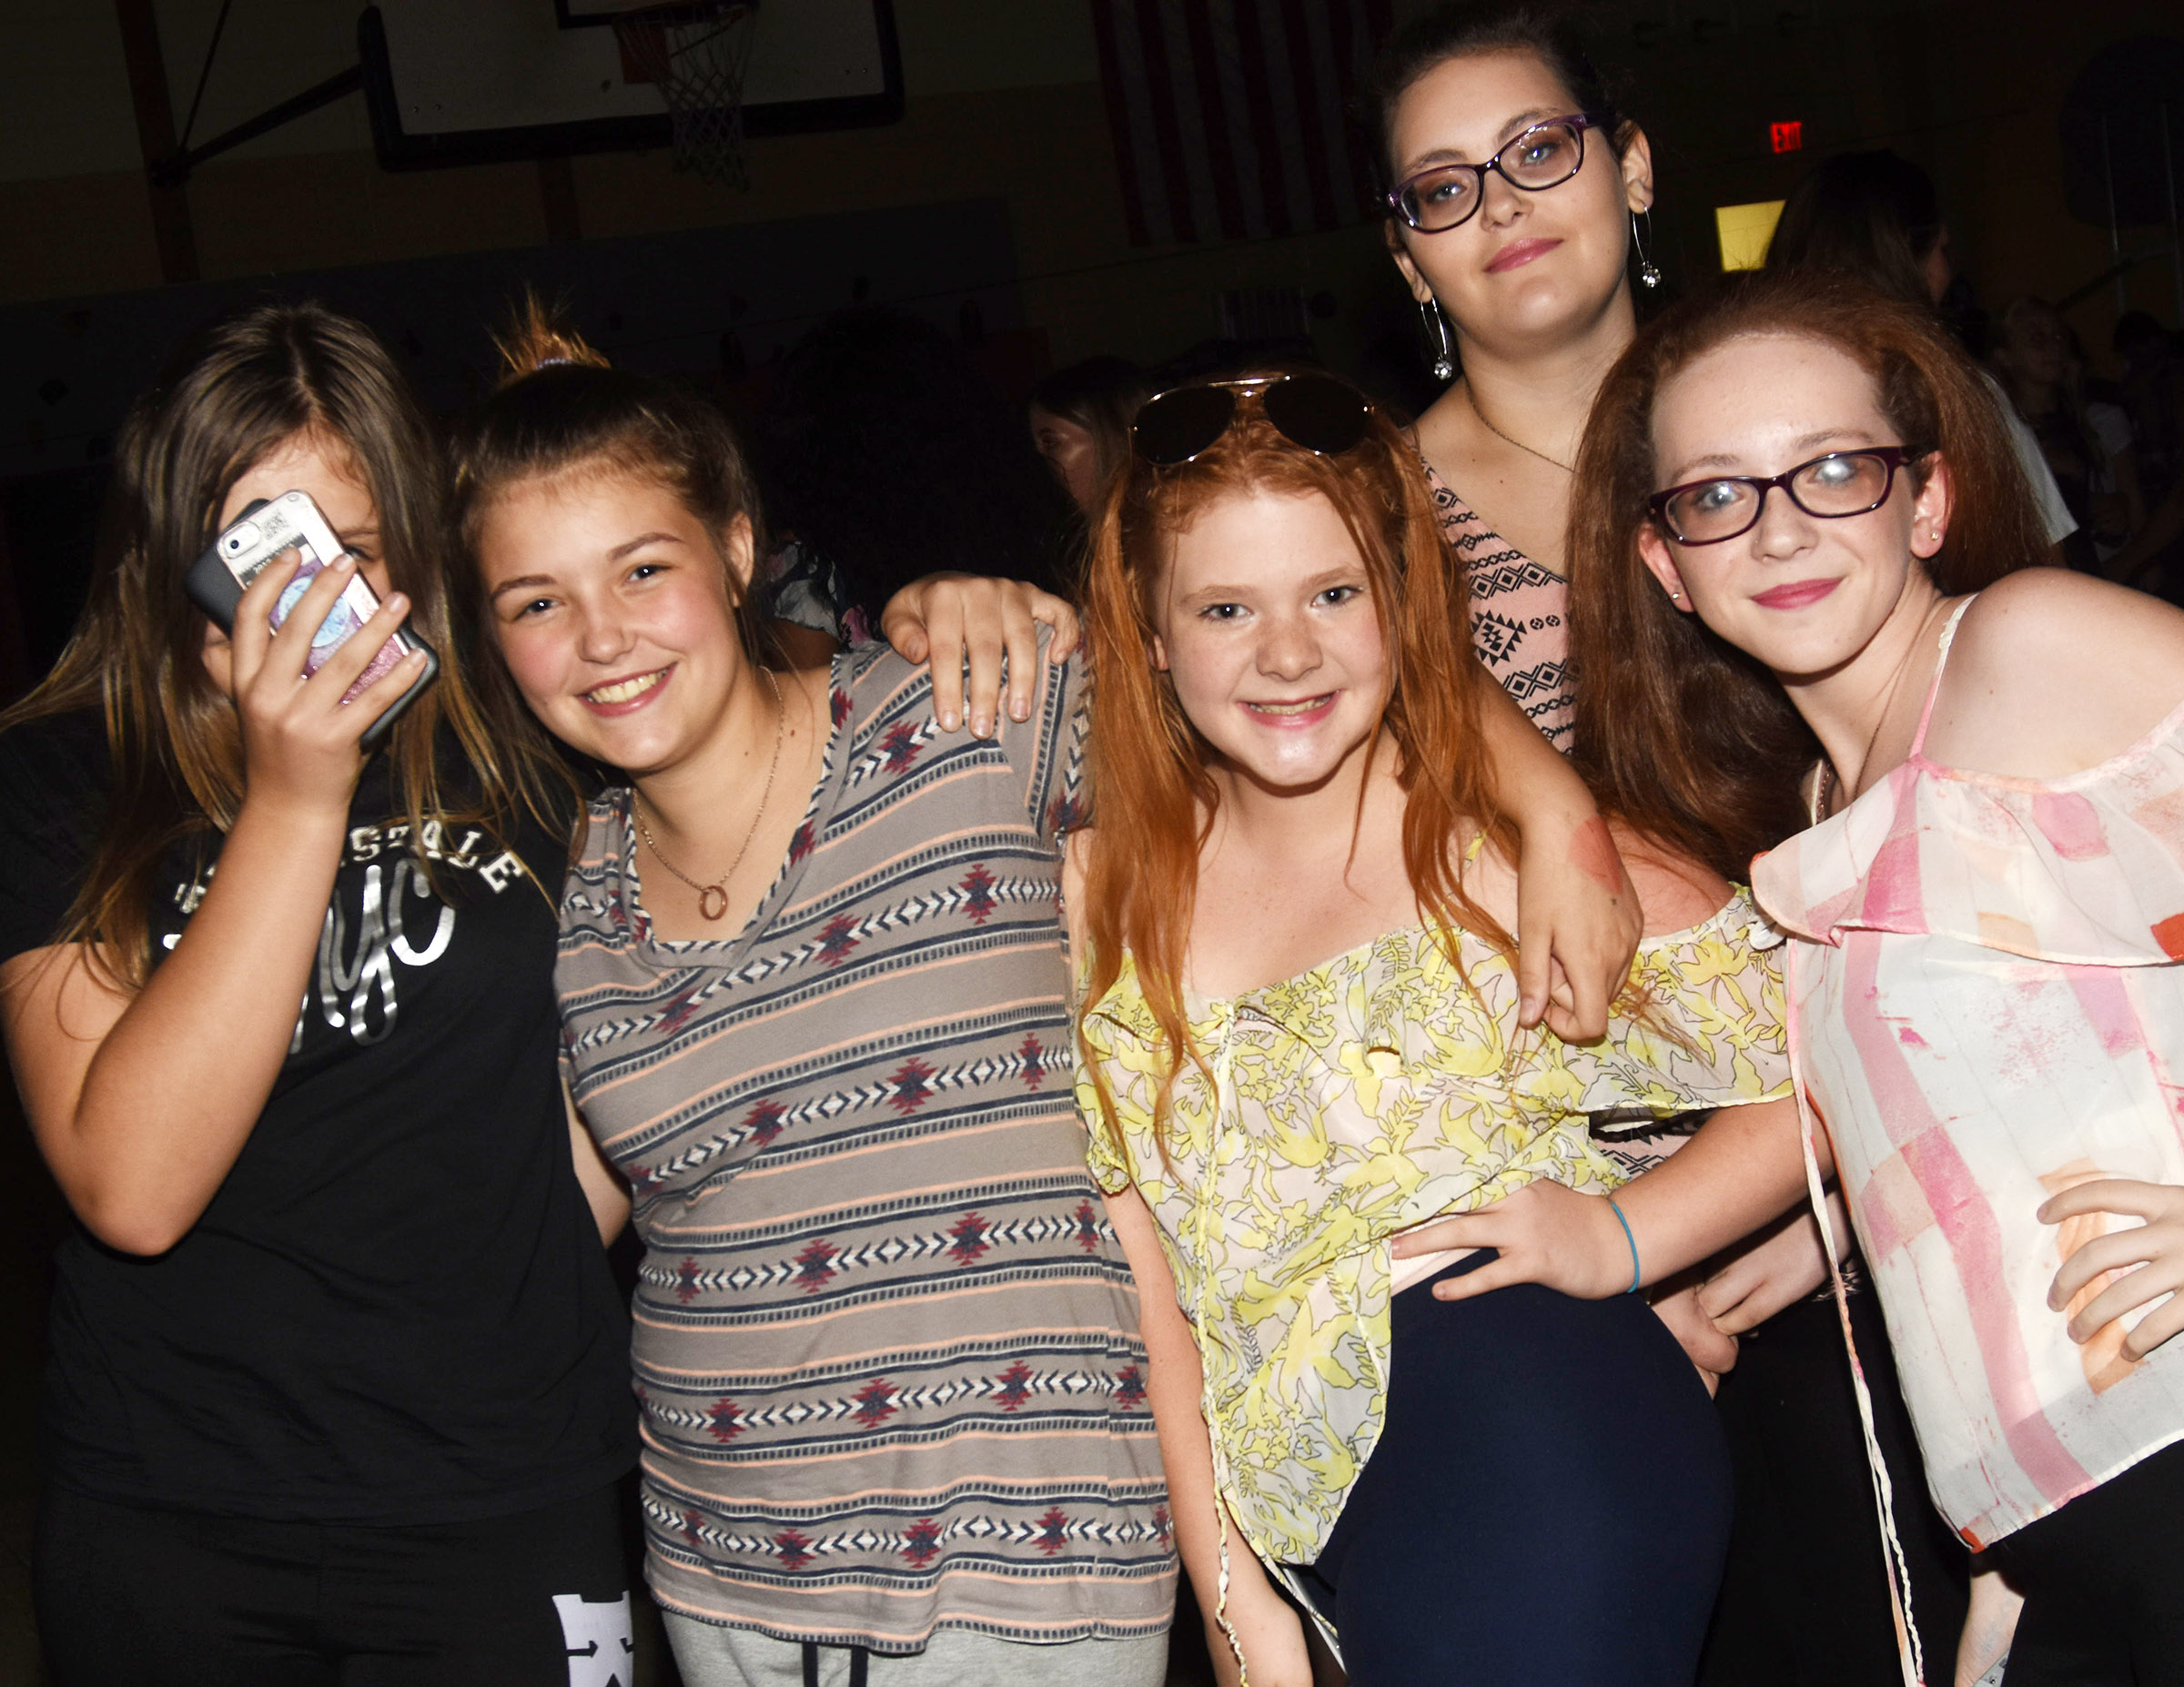 CMS students have fun at the dance. From left are seventh-graders Grace Tungate, Angel Walker, Chloe Motheral, Jasper Wright and Nikki Wright.